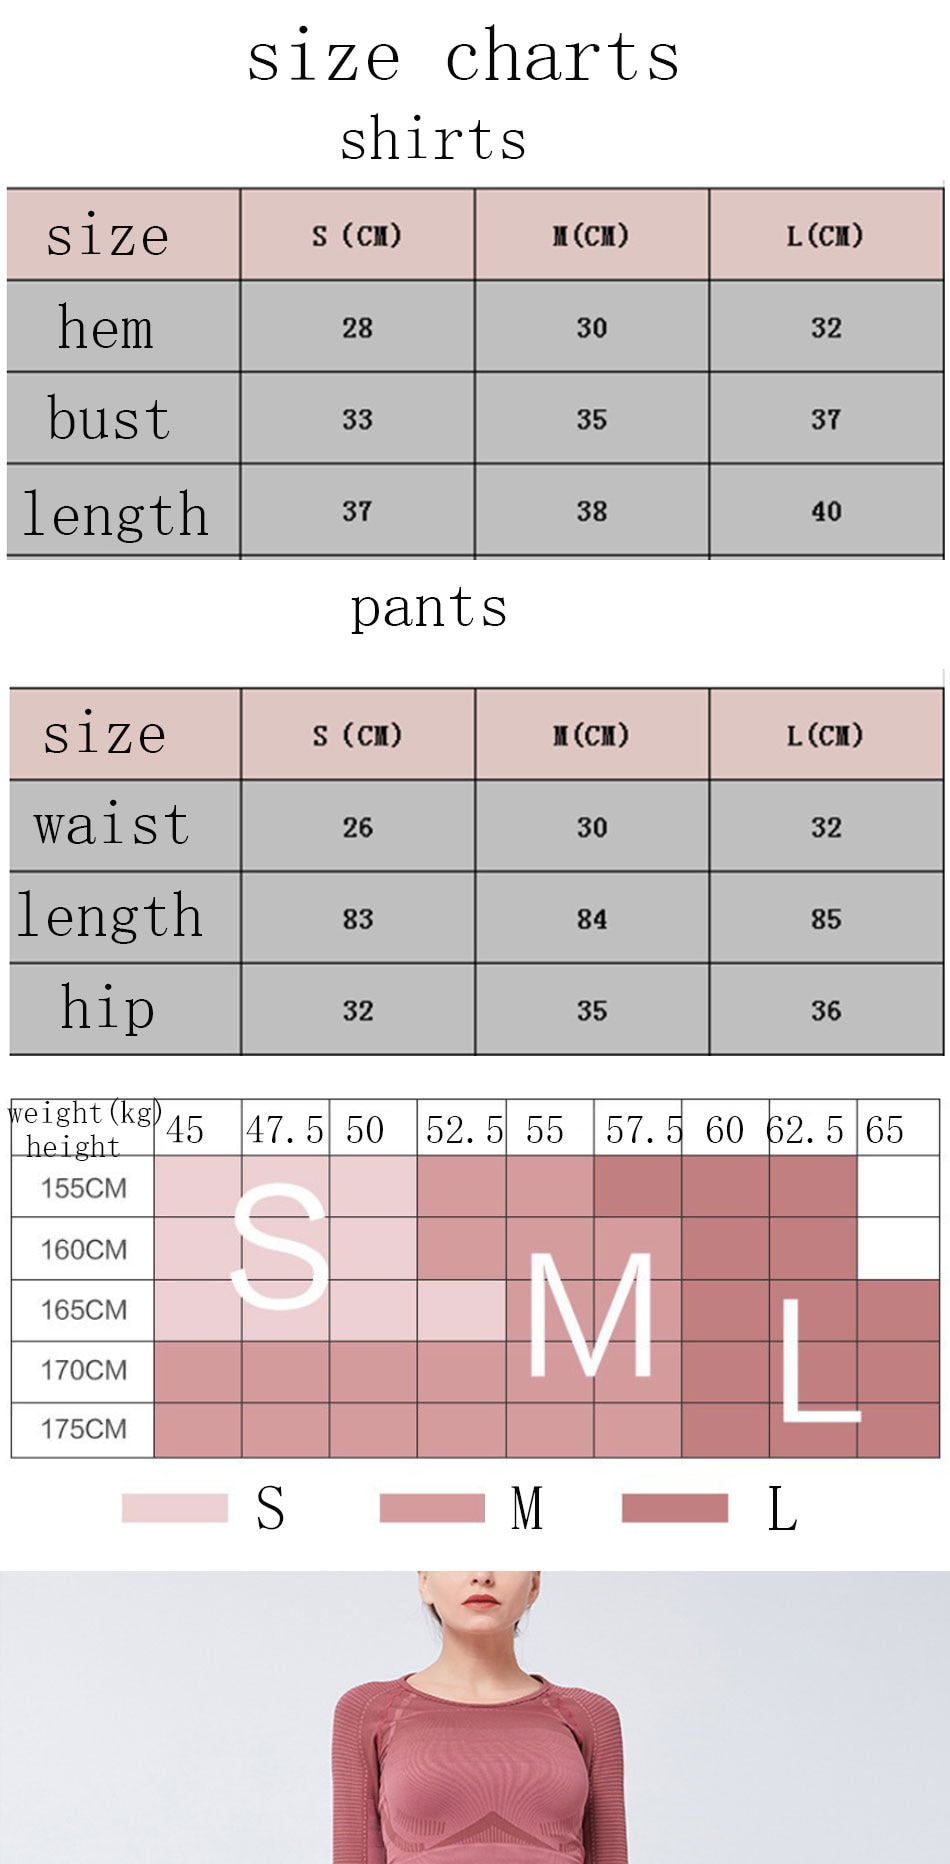 2020 New Women's Fitness Seamless Suits Long Sleeve Crop Tops Legging Pants Workout Tracksuit Yoga Suit Sports Gym Clothes